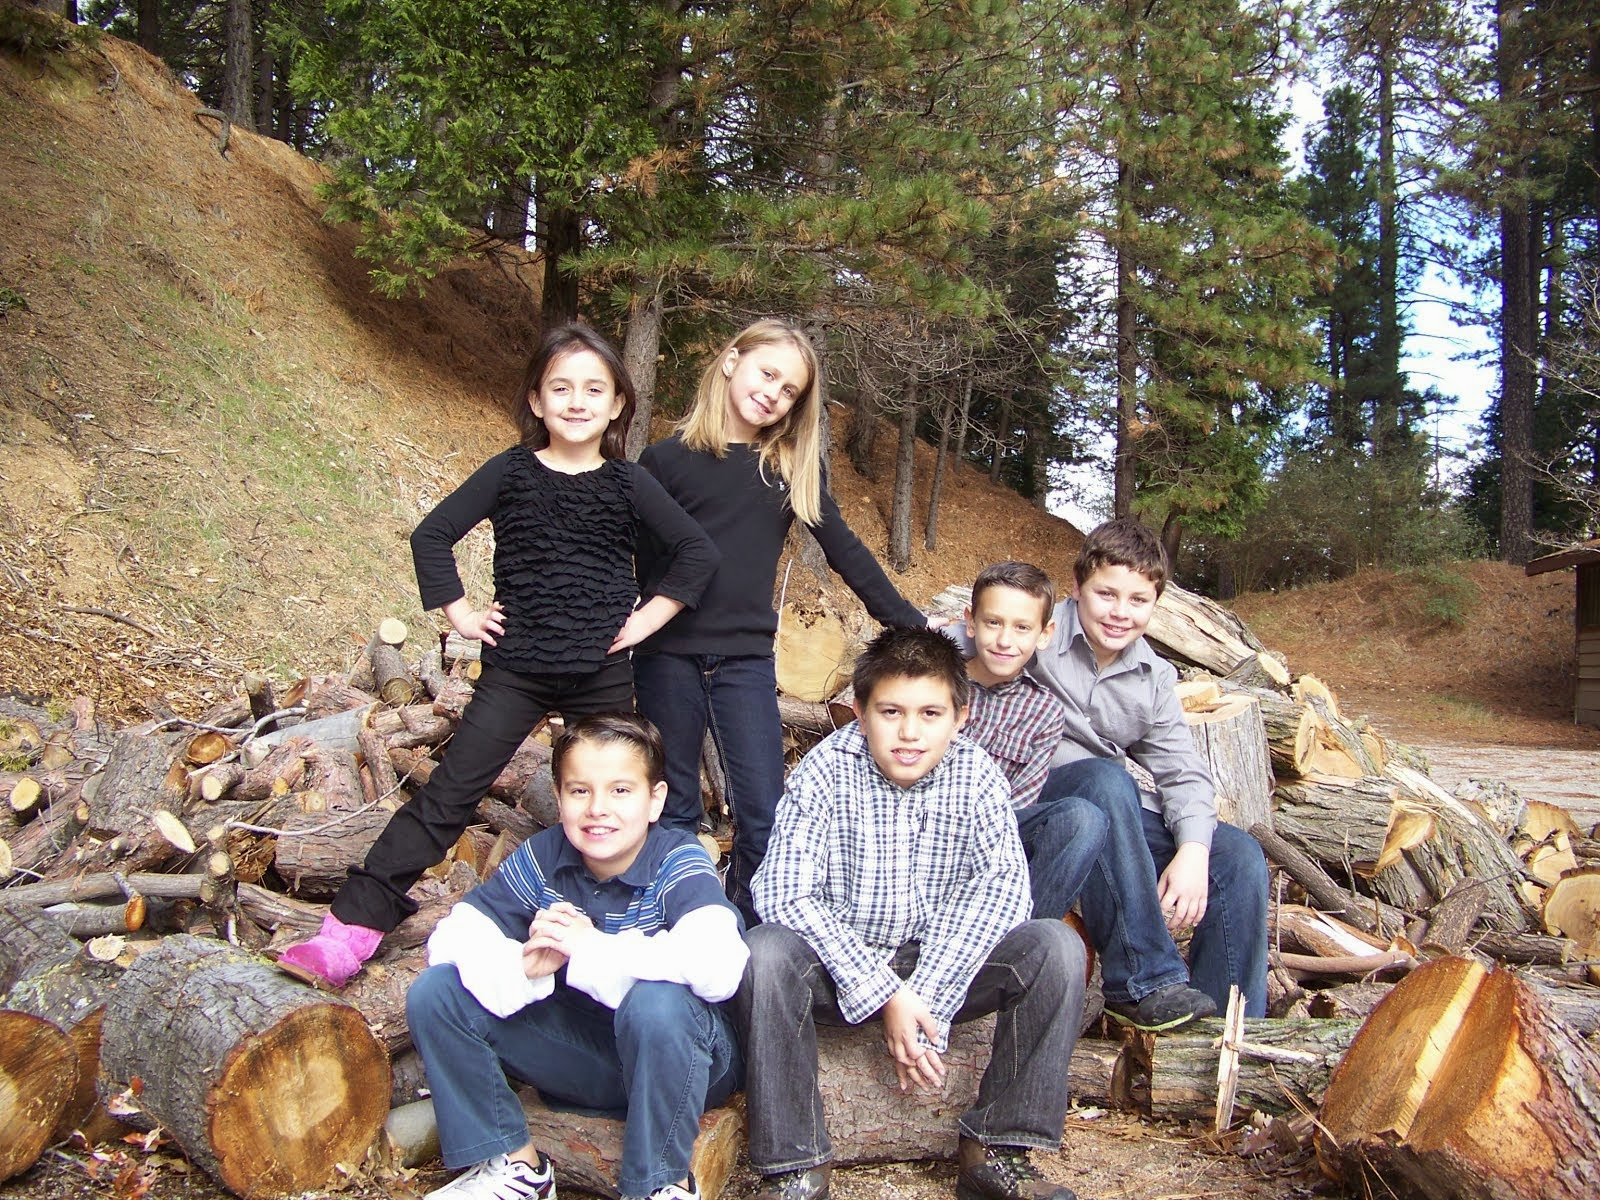 Our mountain kids